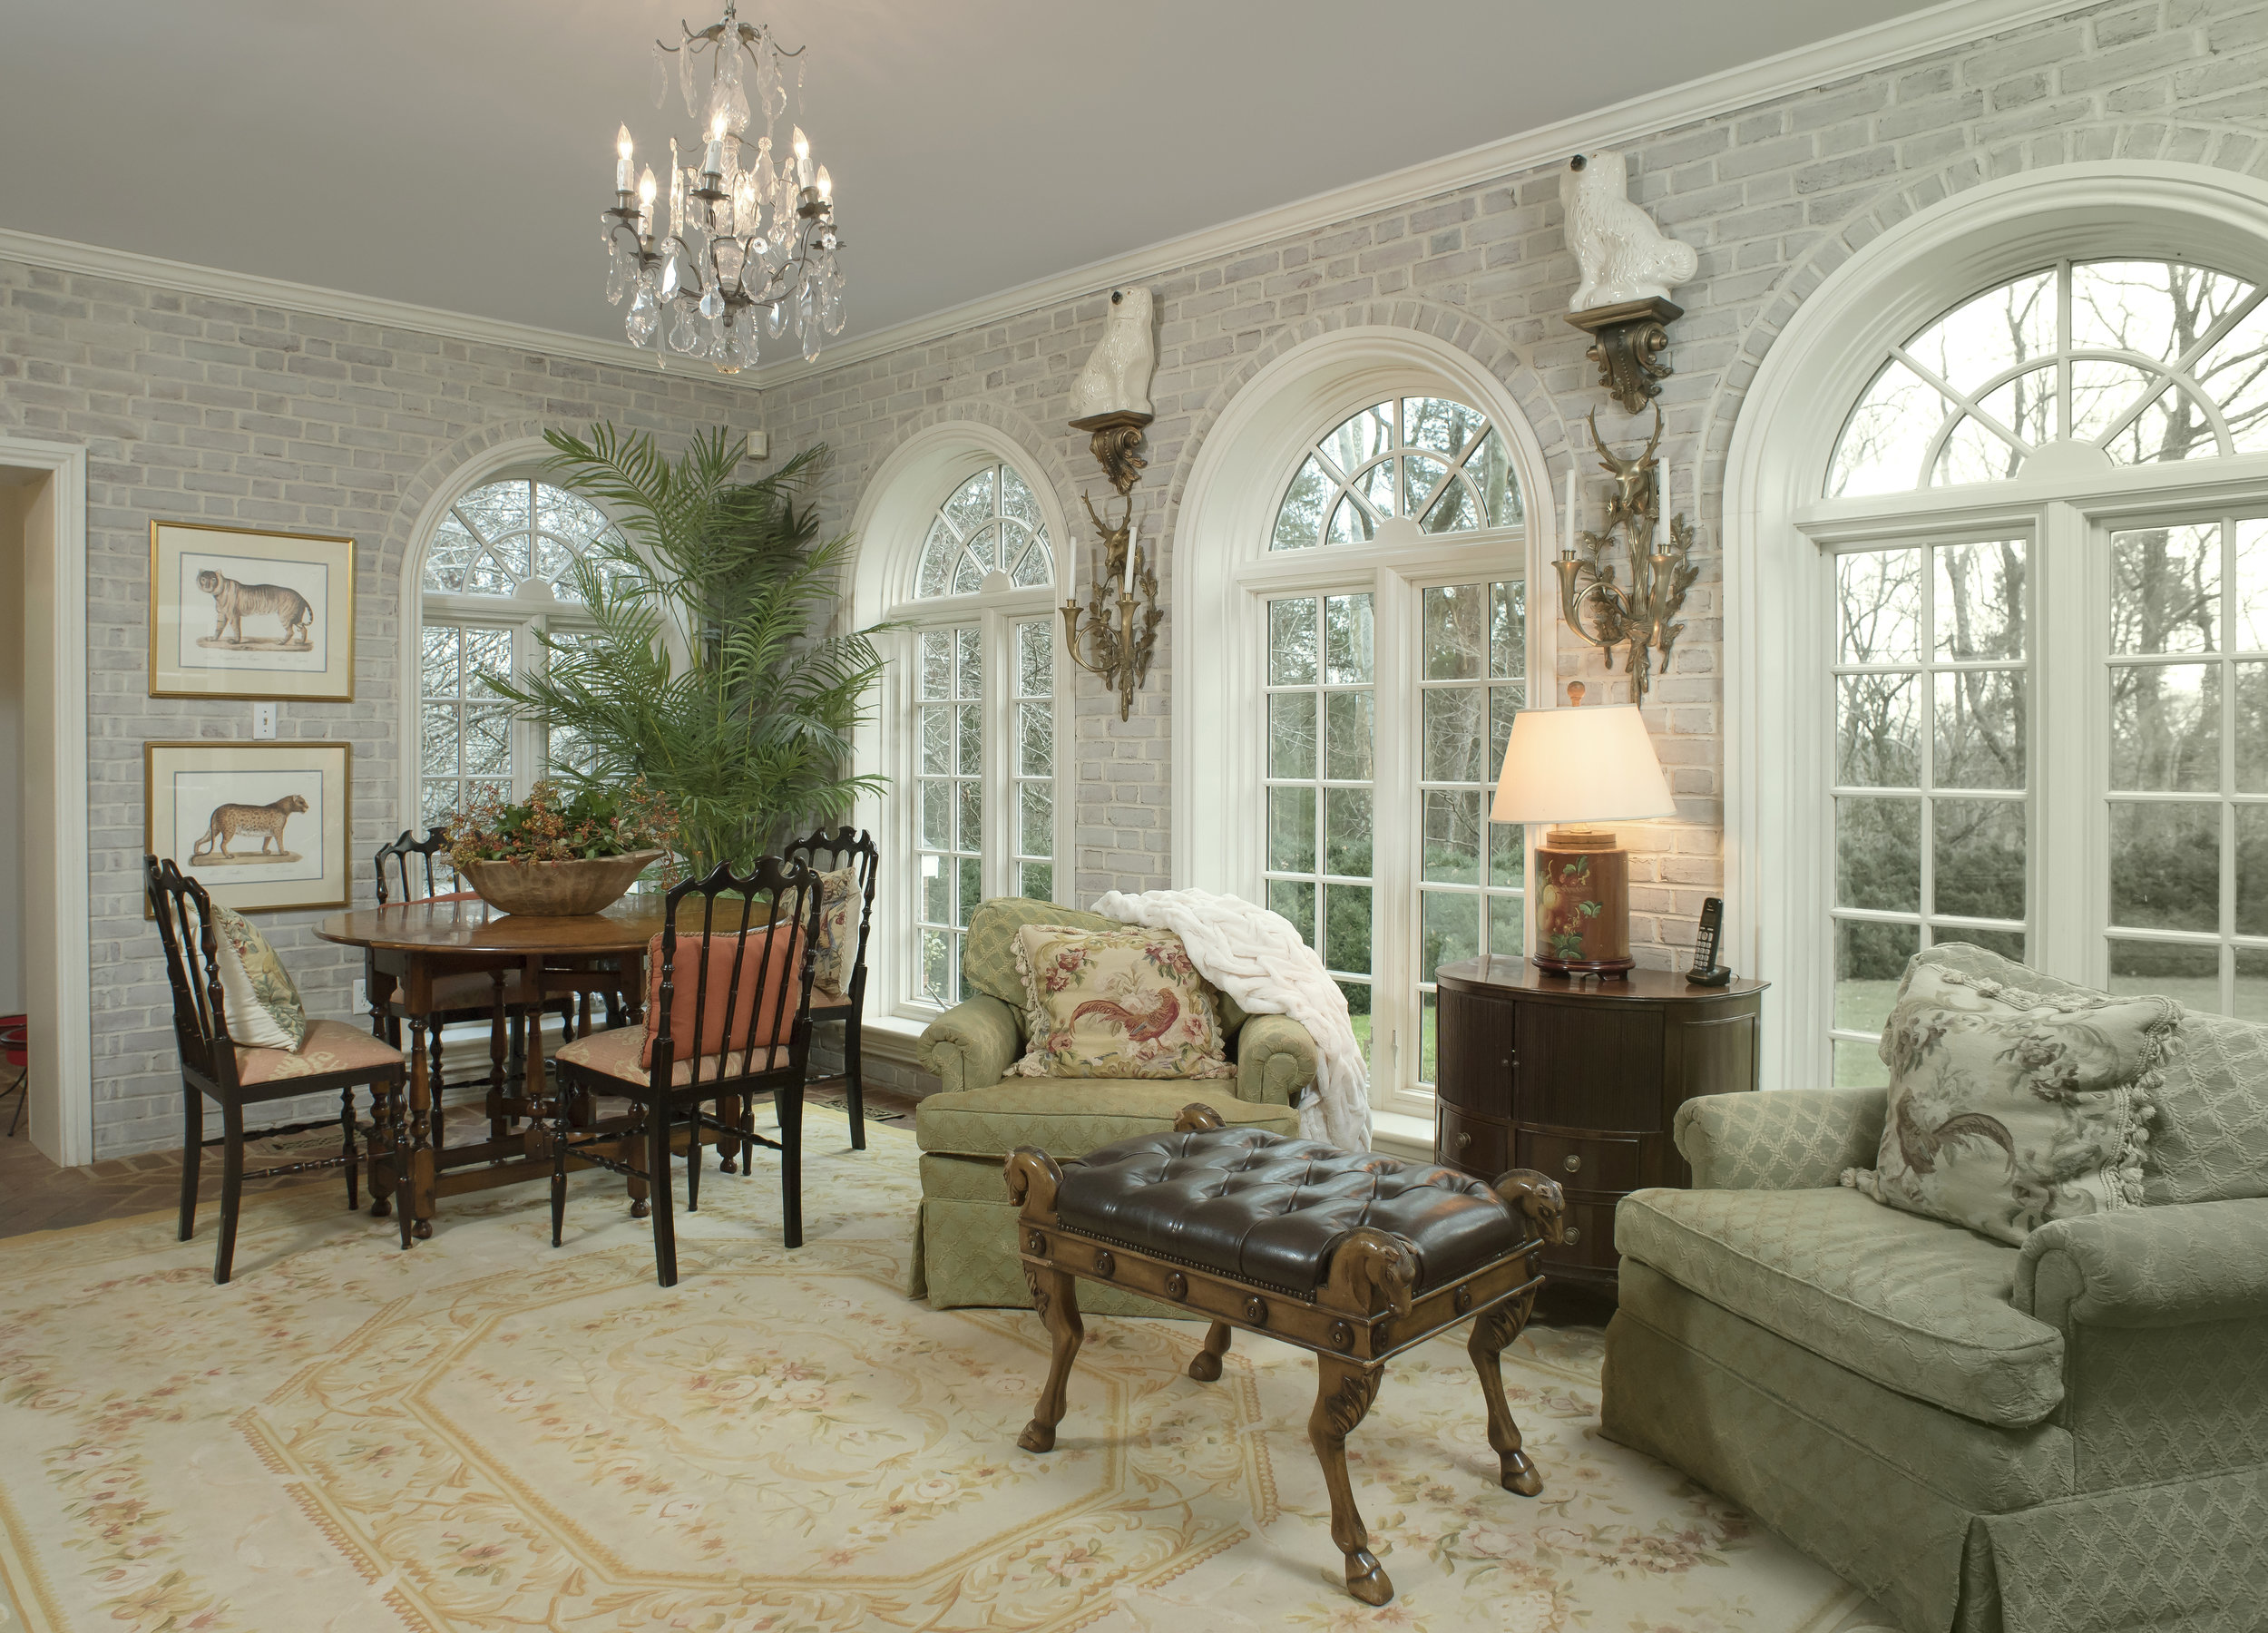 The sunroom that is classic in design.